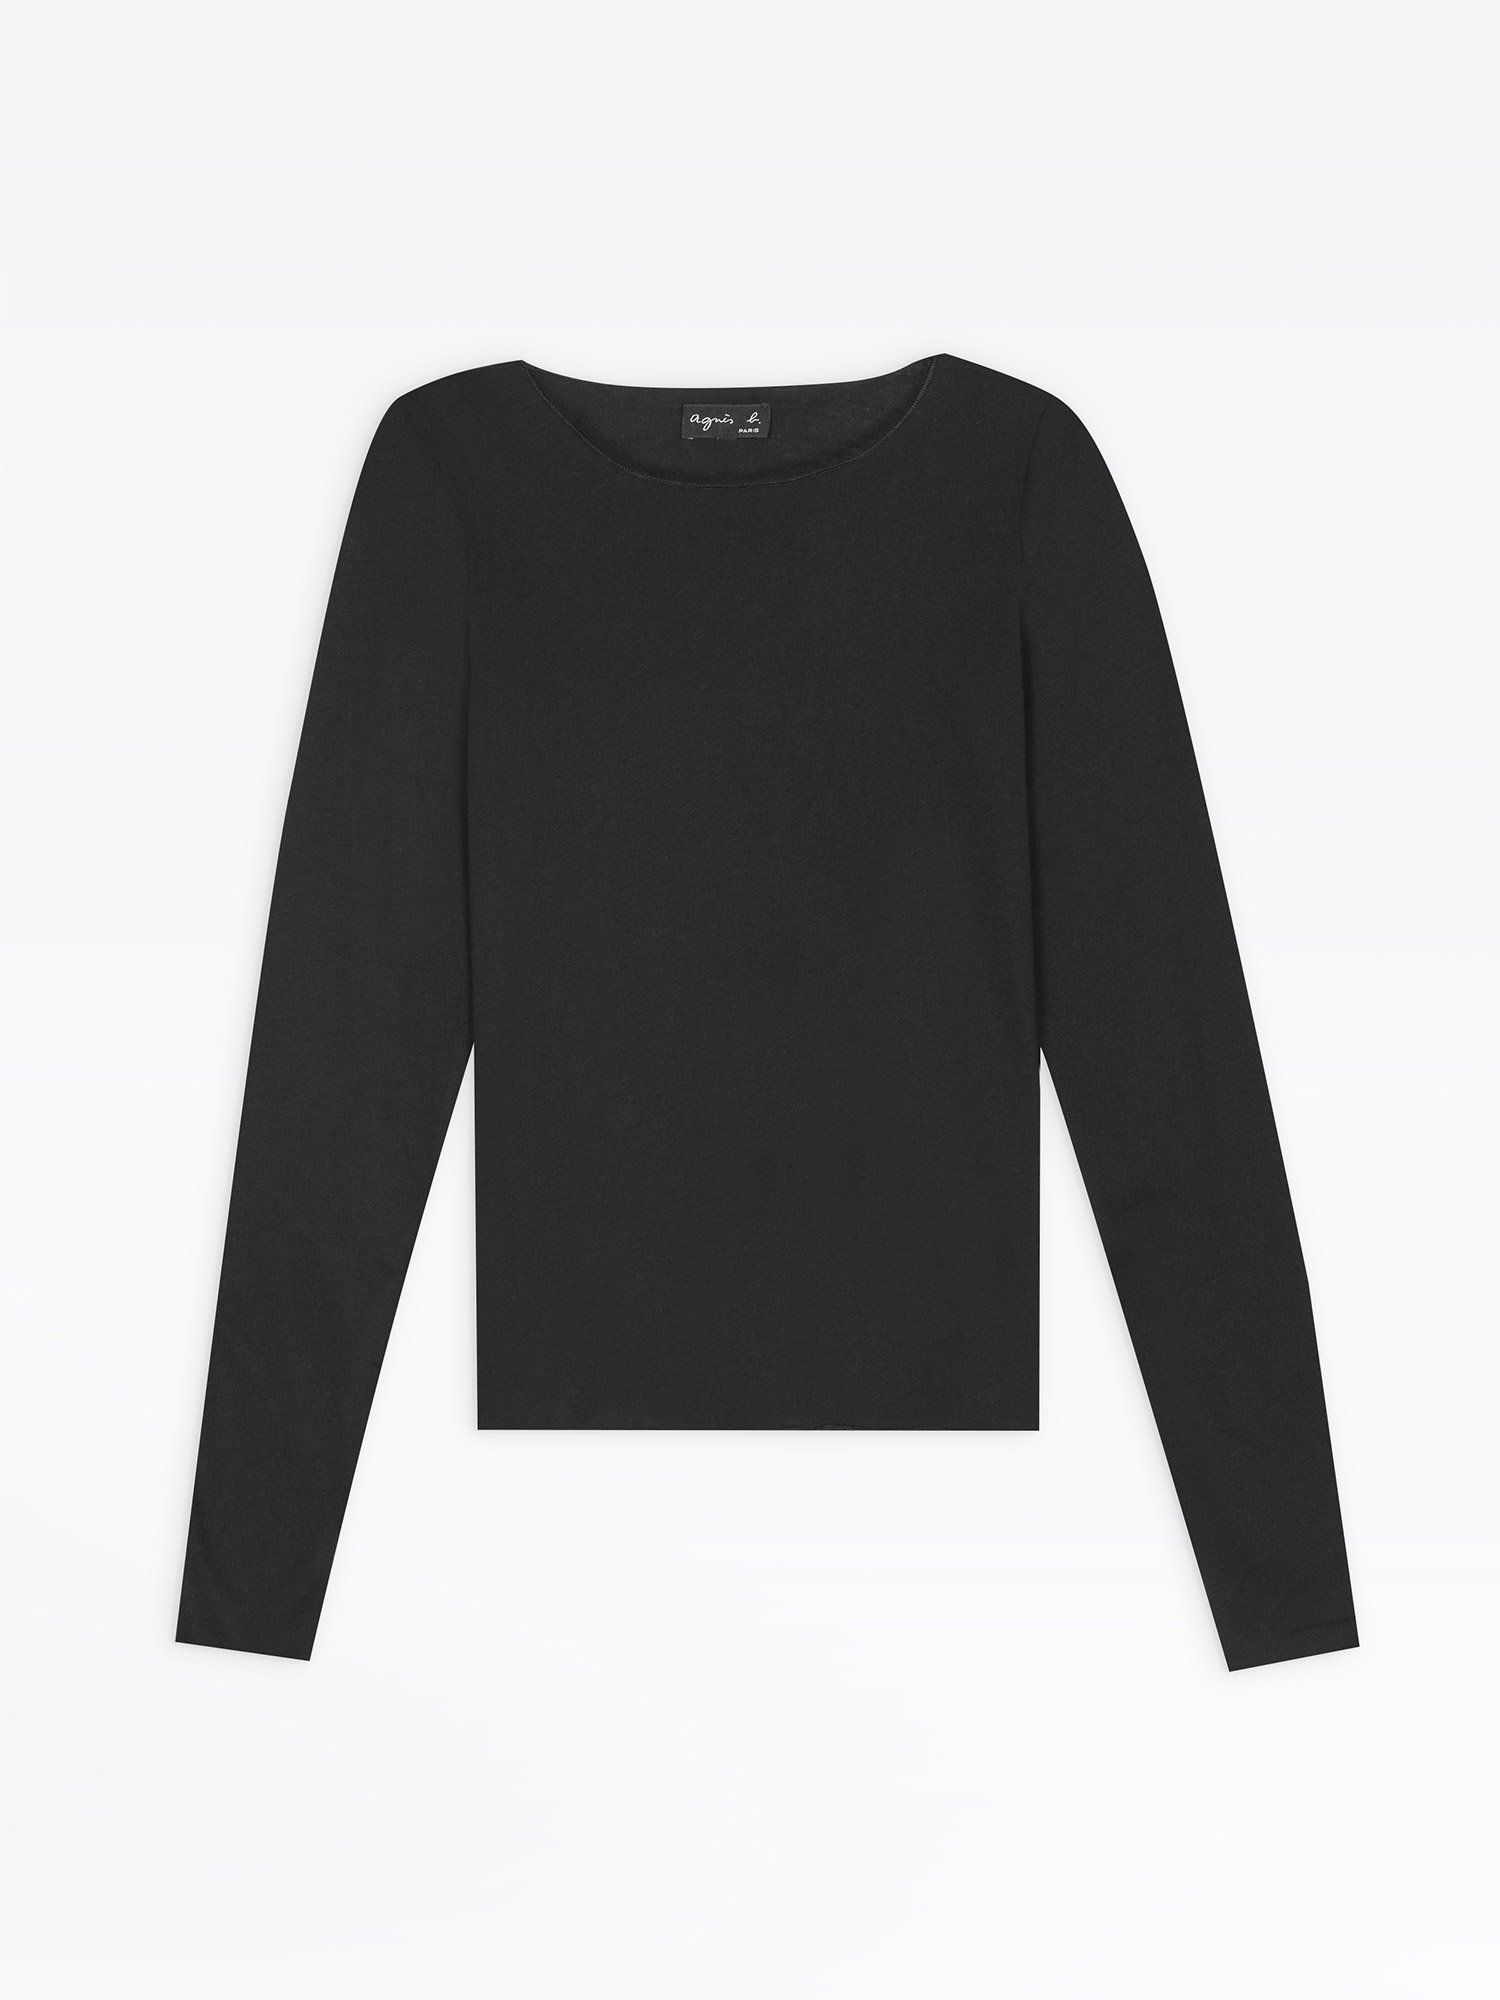 720aa4983ae1 ... black extra-long sleeves ultra t-shirt. Loading... Image not available.